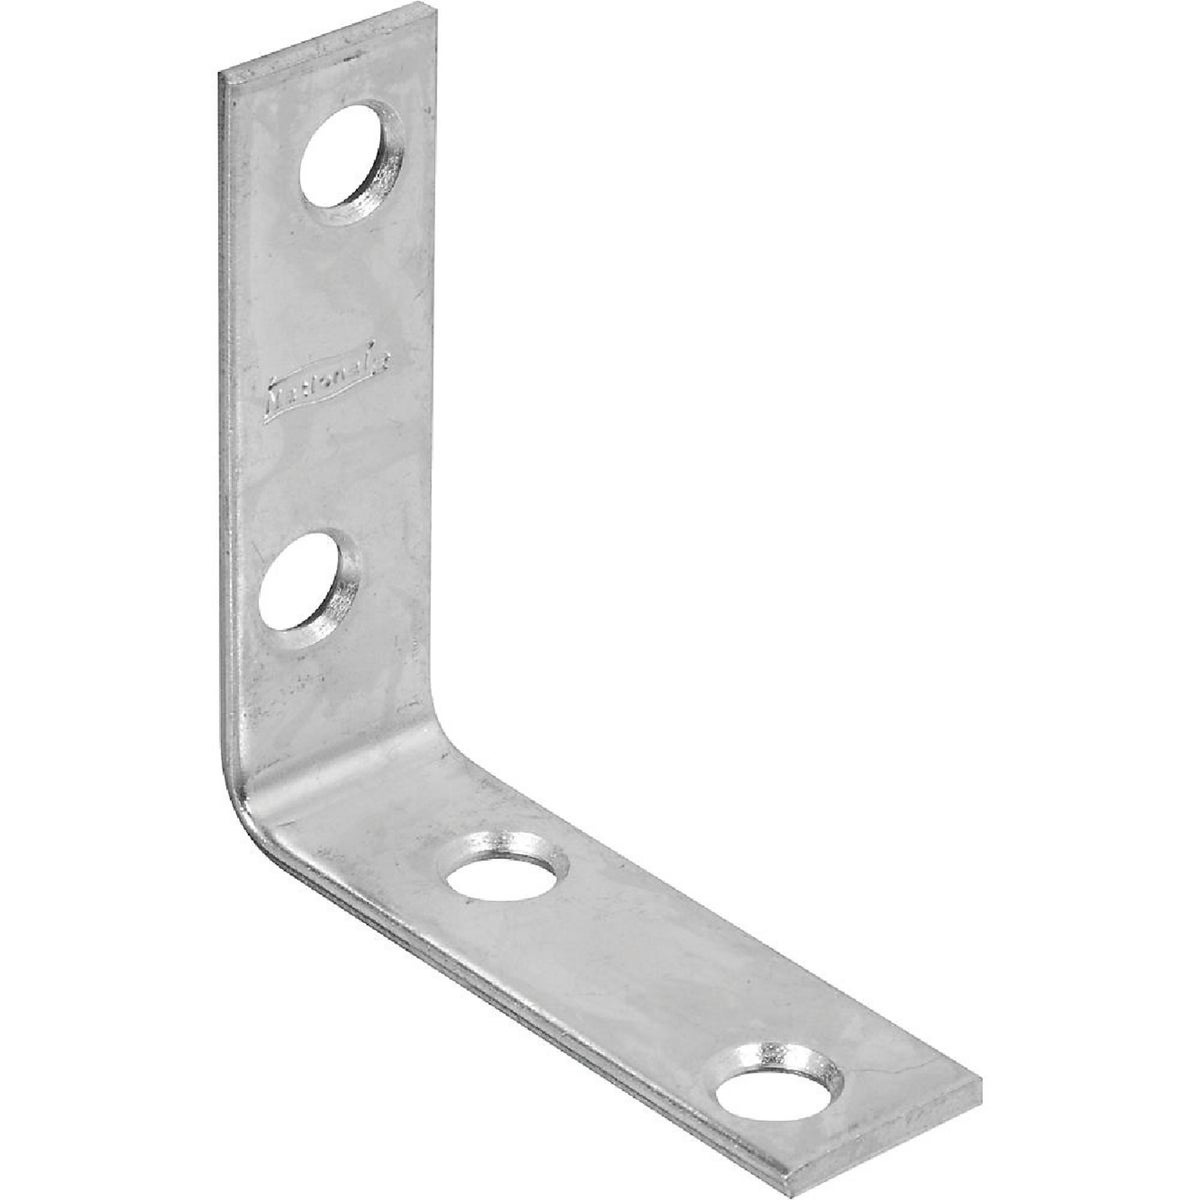 2X5/8 ZINC CORNER BRACE - N266361 by National Mfg Co